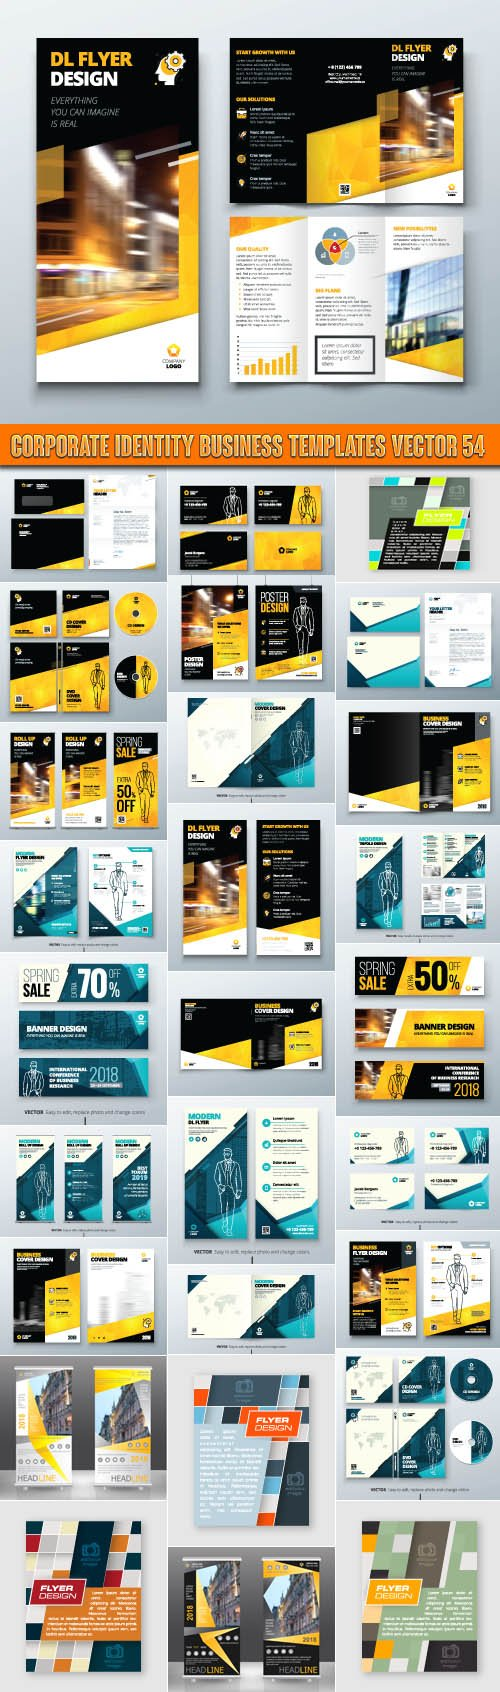 Corporate identity business templates vector 54